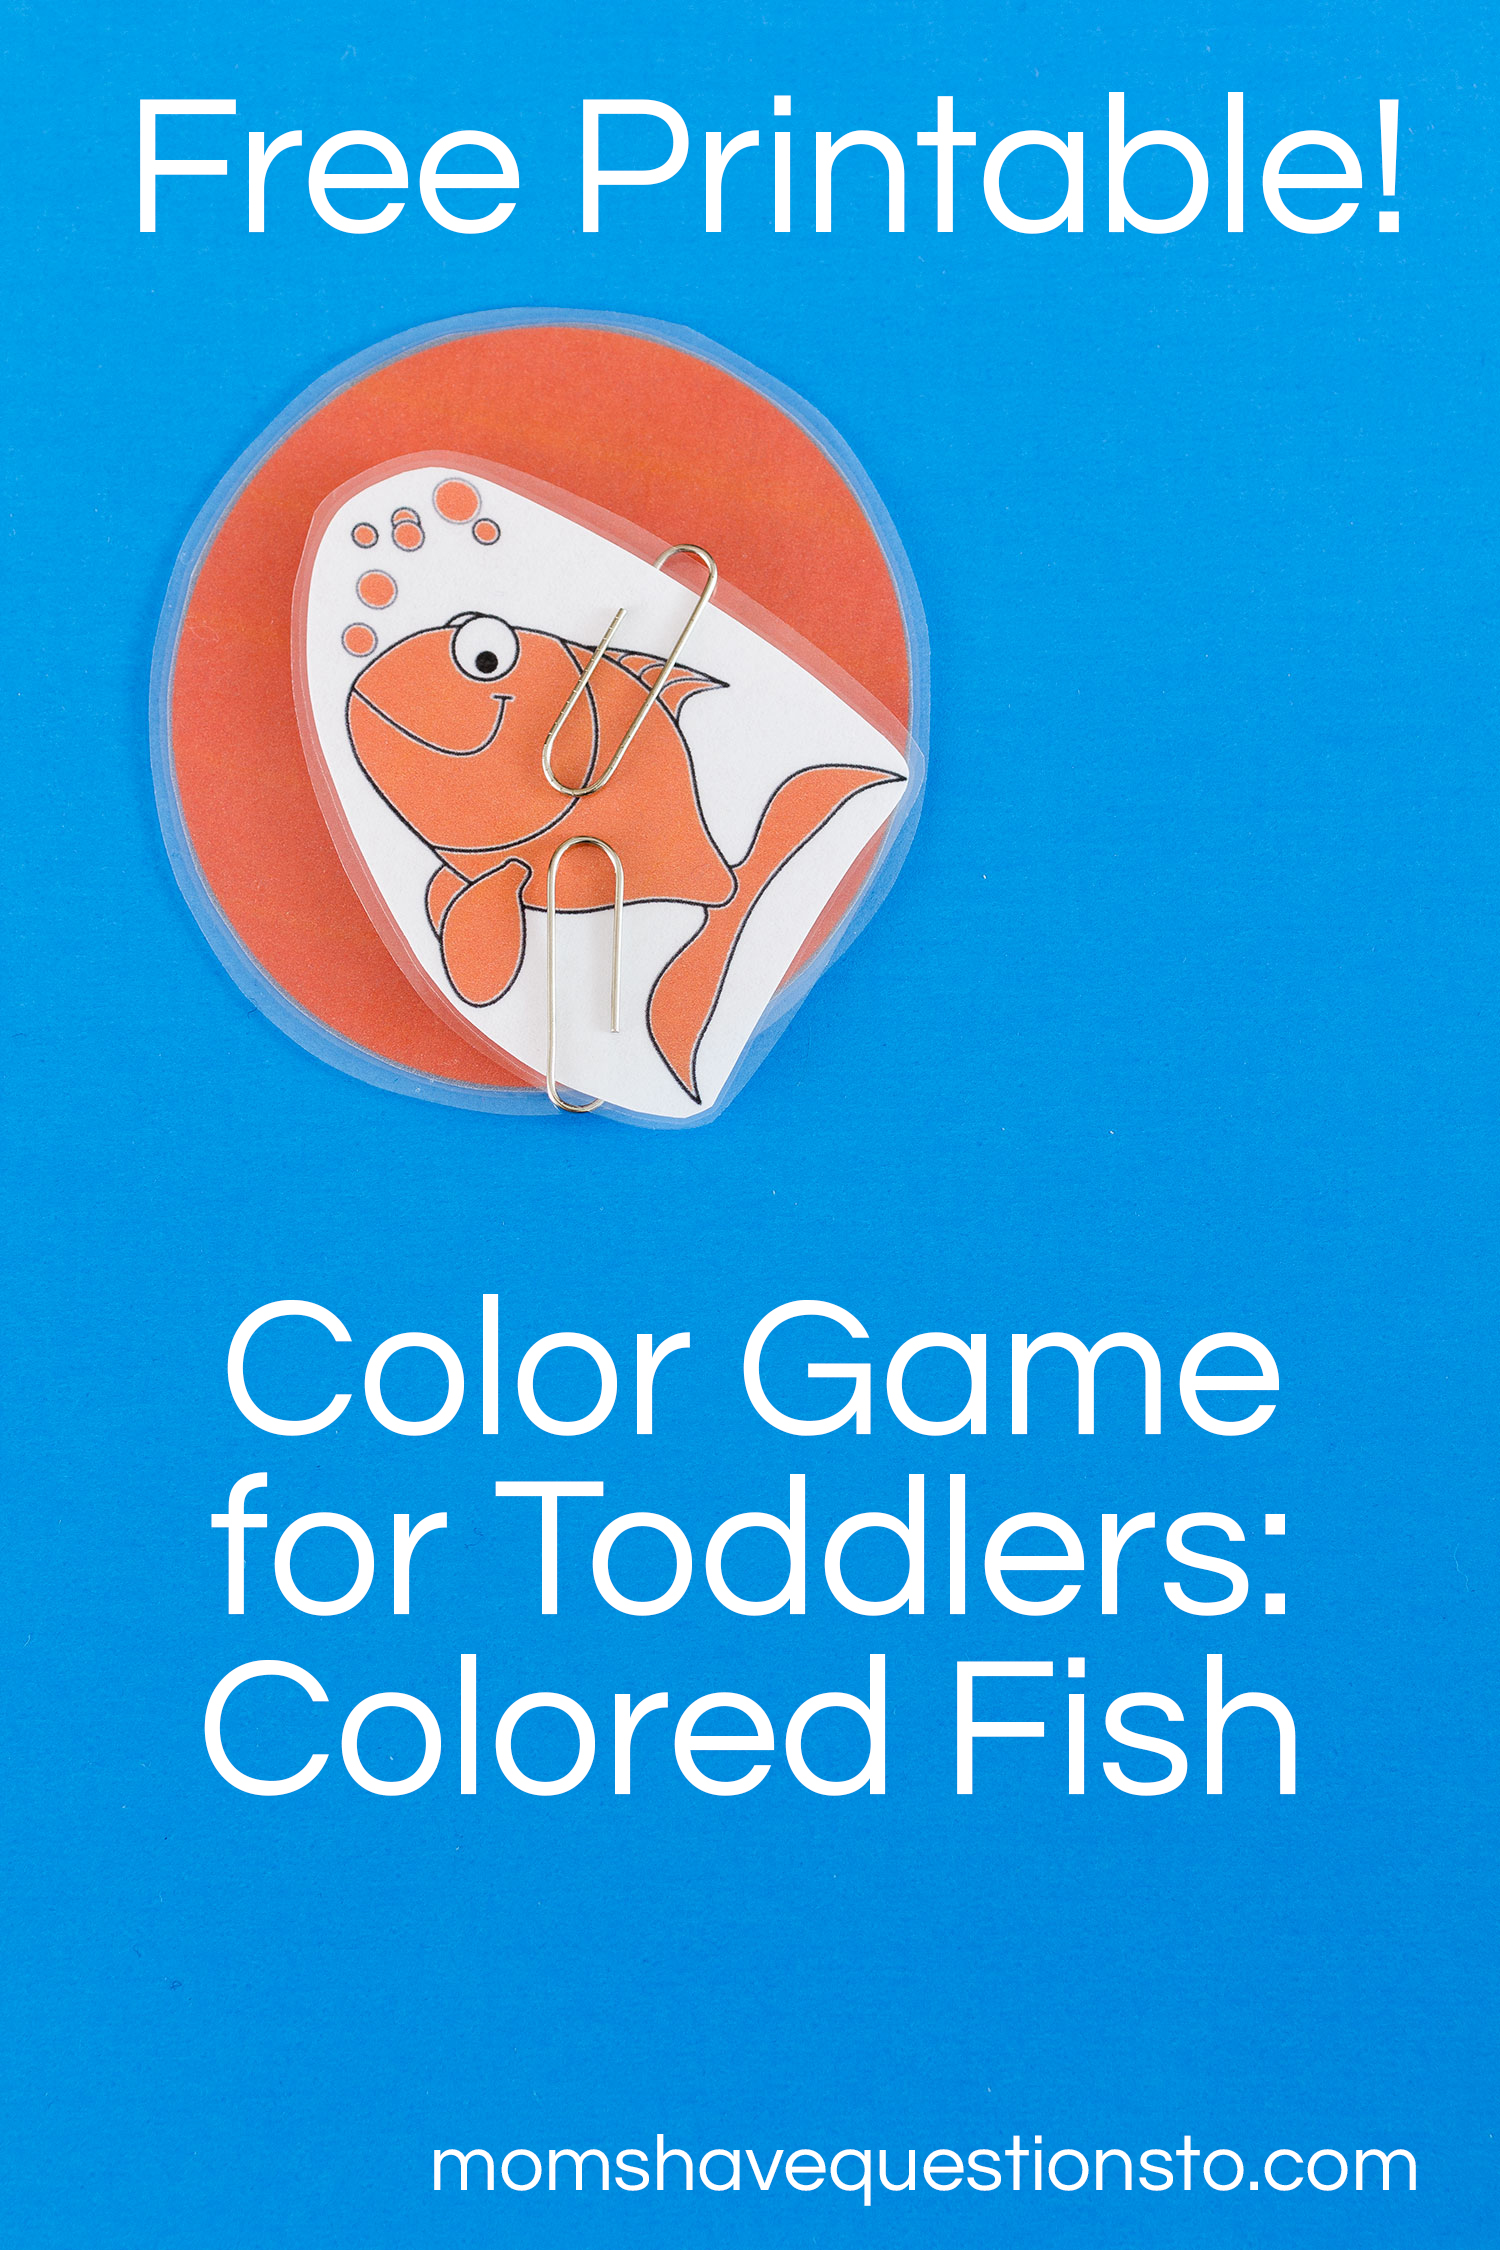 Free Printable! Color Games for Toddlers Part 4 - Colored Fishies - Moms Have Questions Too